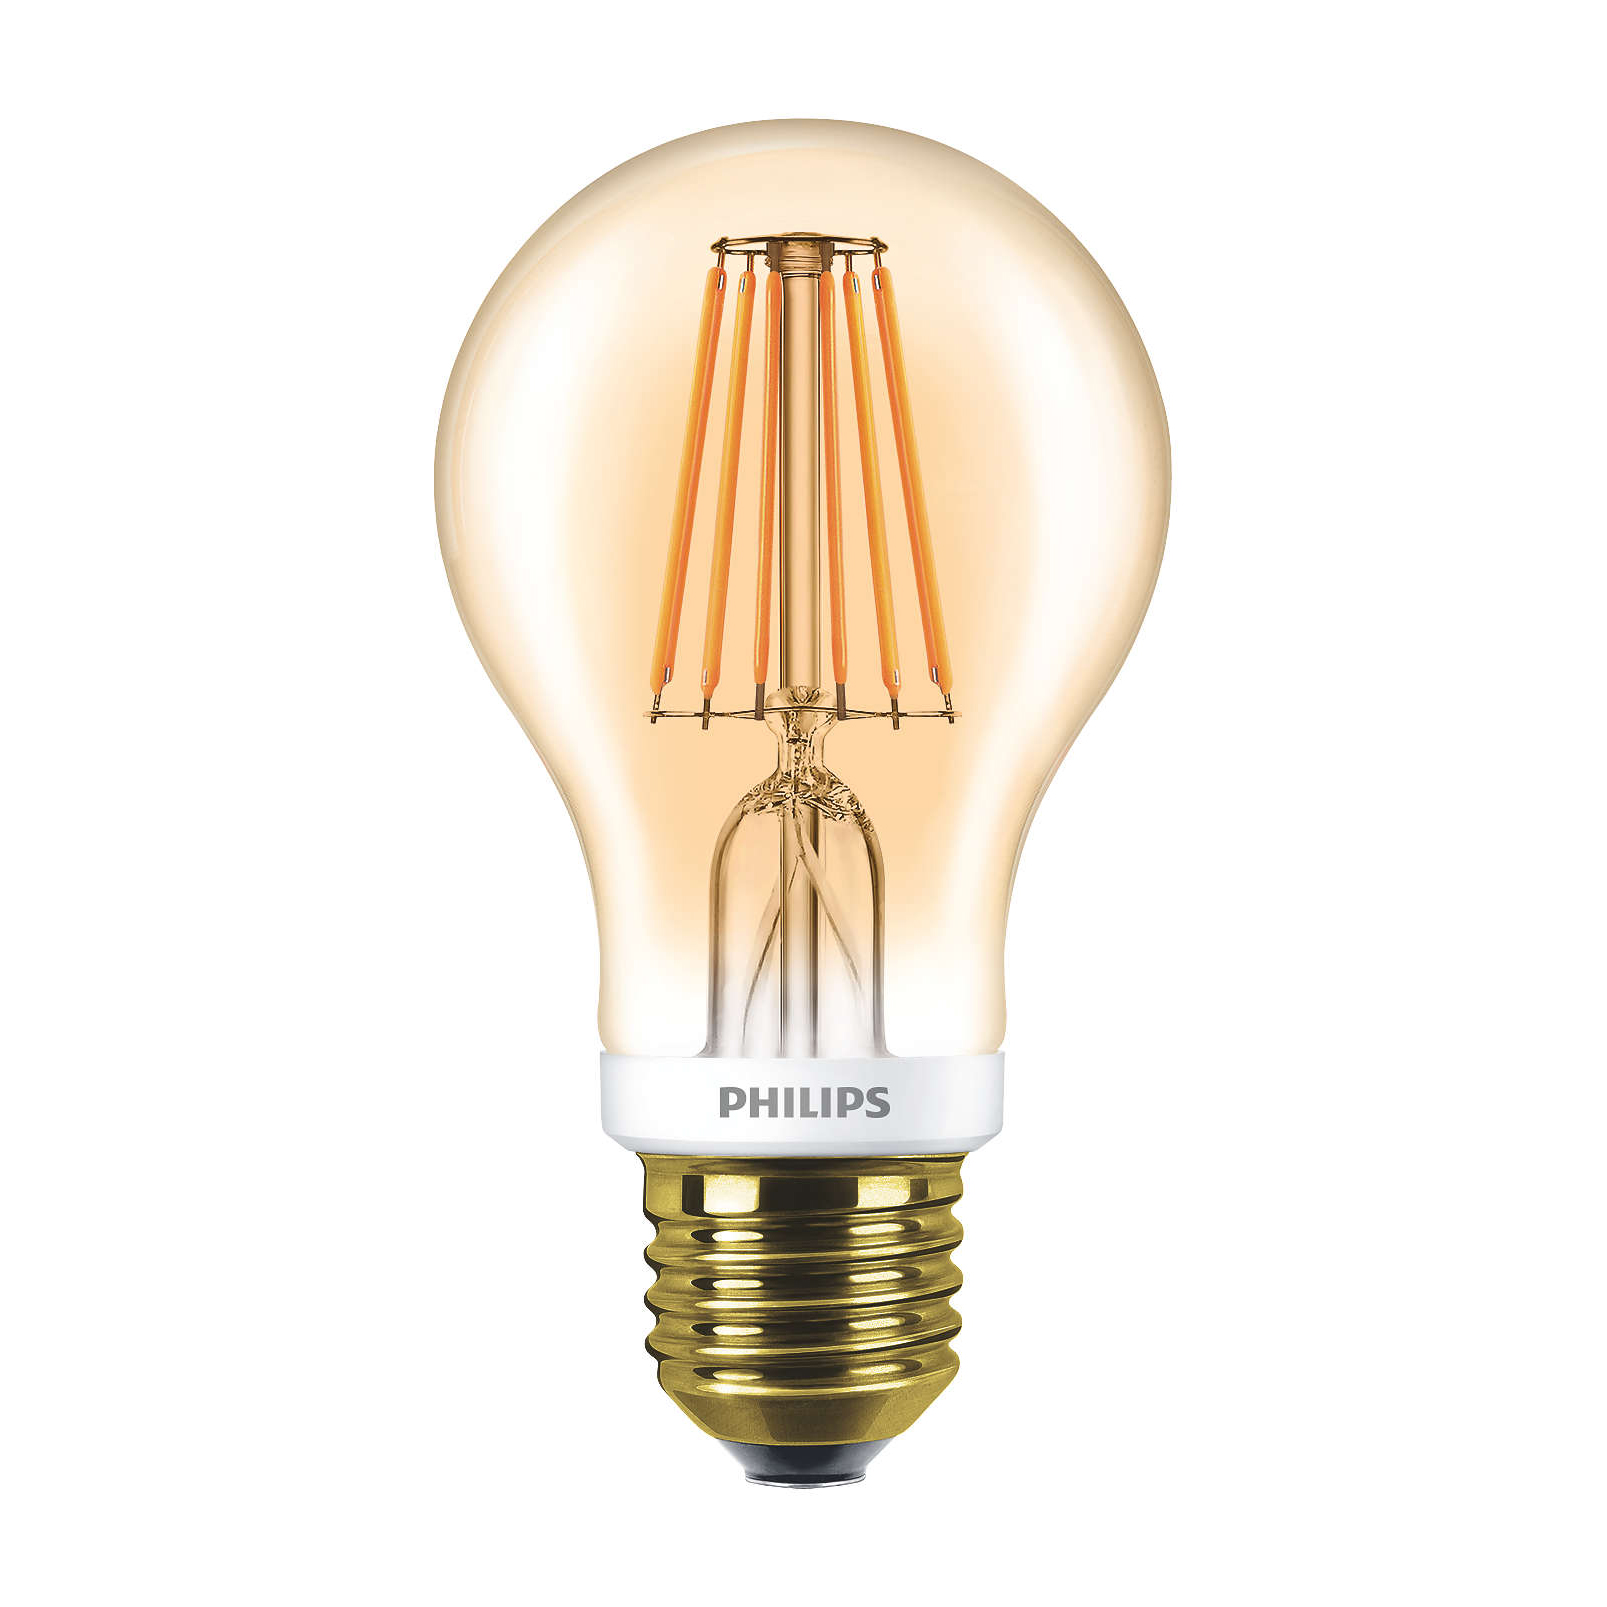 philips led filament bulb gold a60 e27 7 5w 2000k. Black Bedroom Furniture Sets. Home Design Ideas